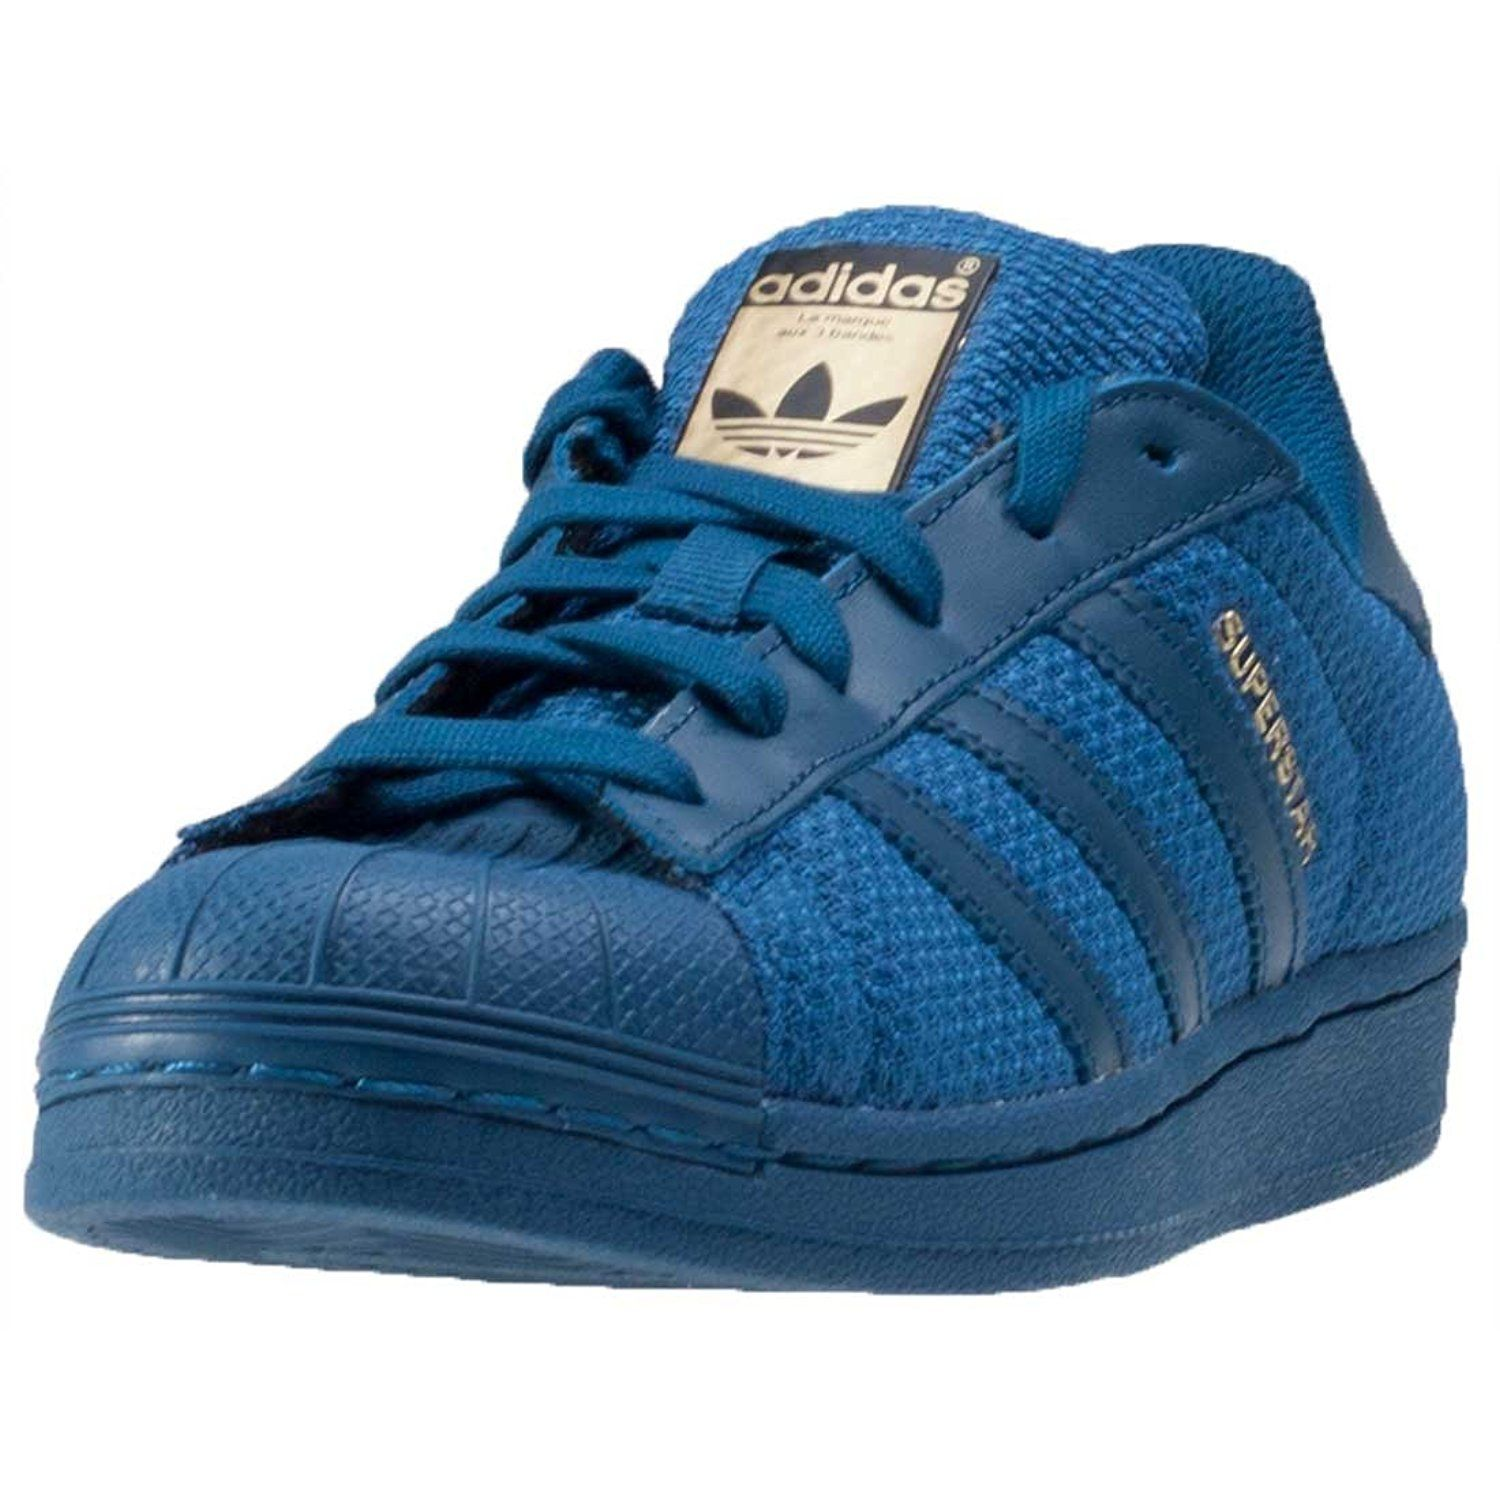 Adidas Originals Superstar Unisex Kinder Sneakers: Schuhe Amazon : Schuhe Sneakers: efc332